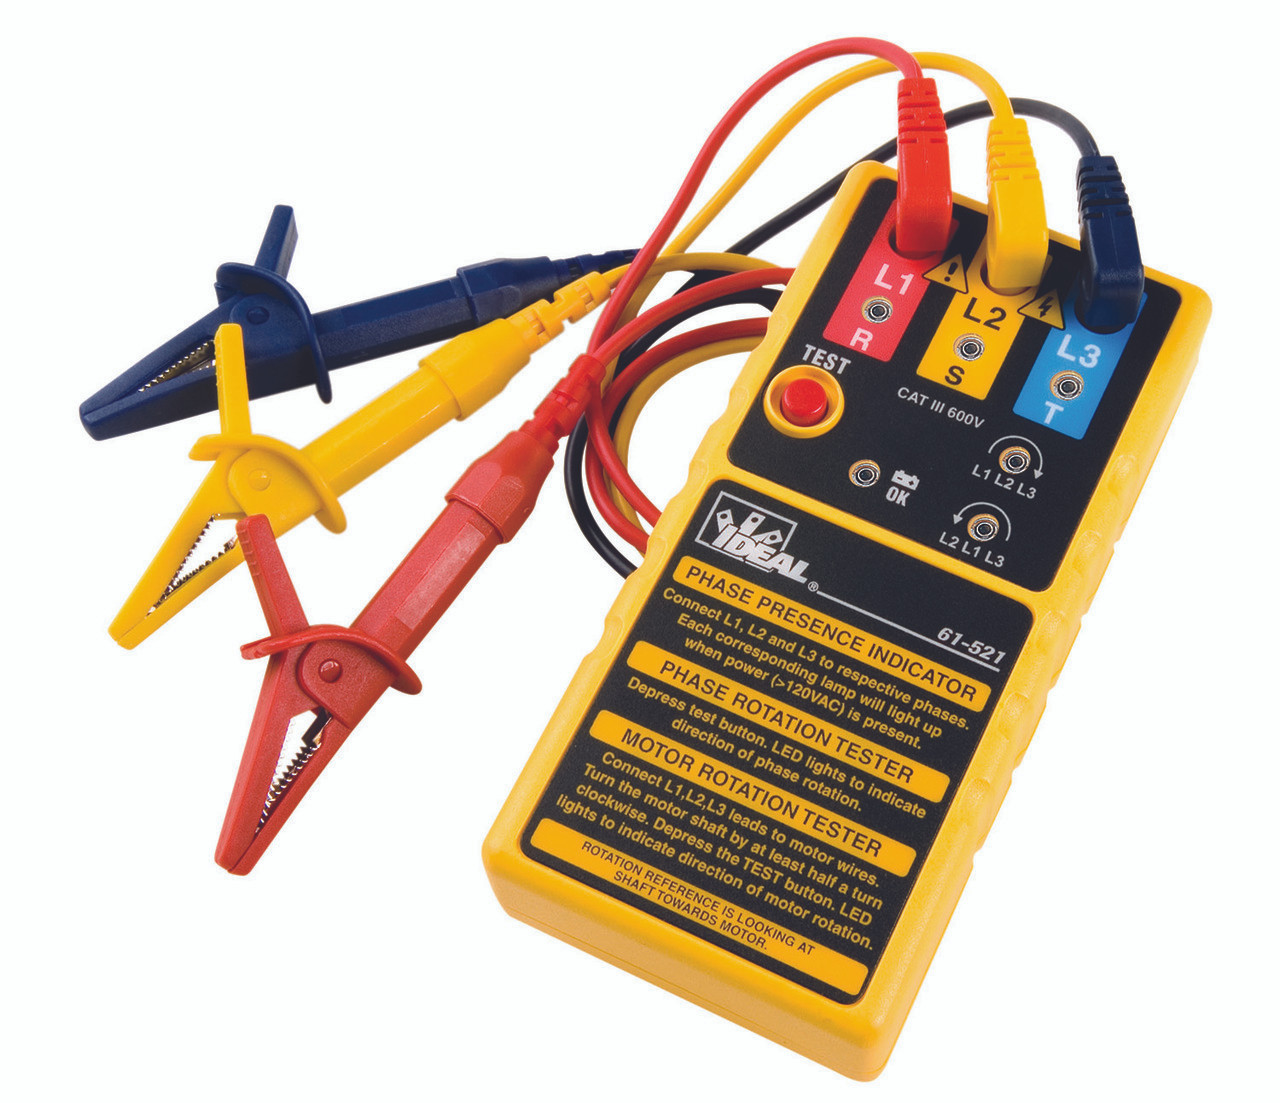 Outstanding Ideal 61 521 Electrical Motor Rotation Meter 3 Phase Tester Wiring Digital Resources Cettecompassionincorg